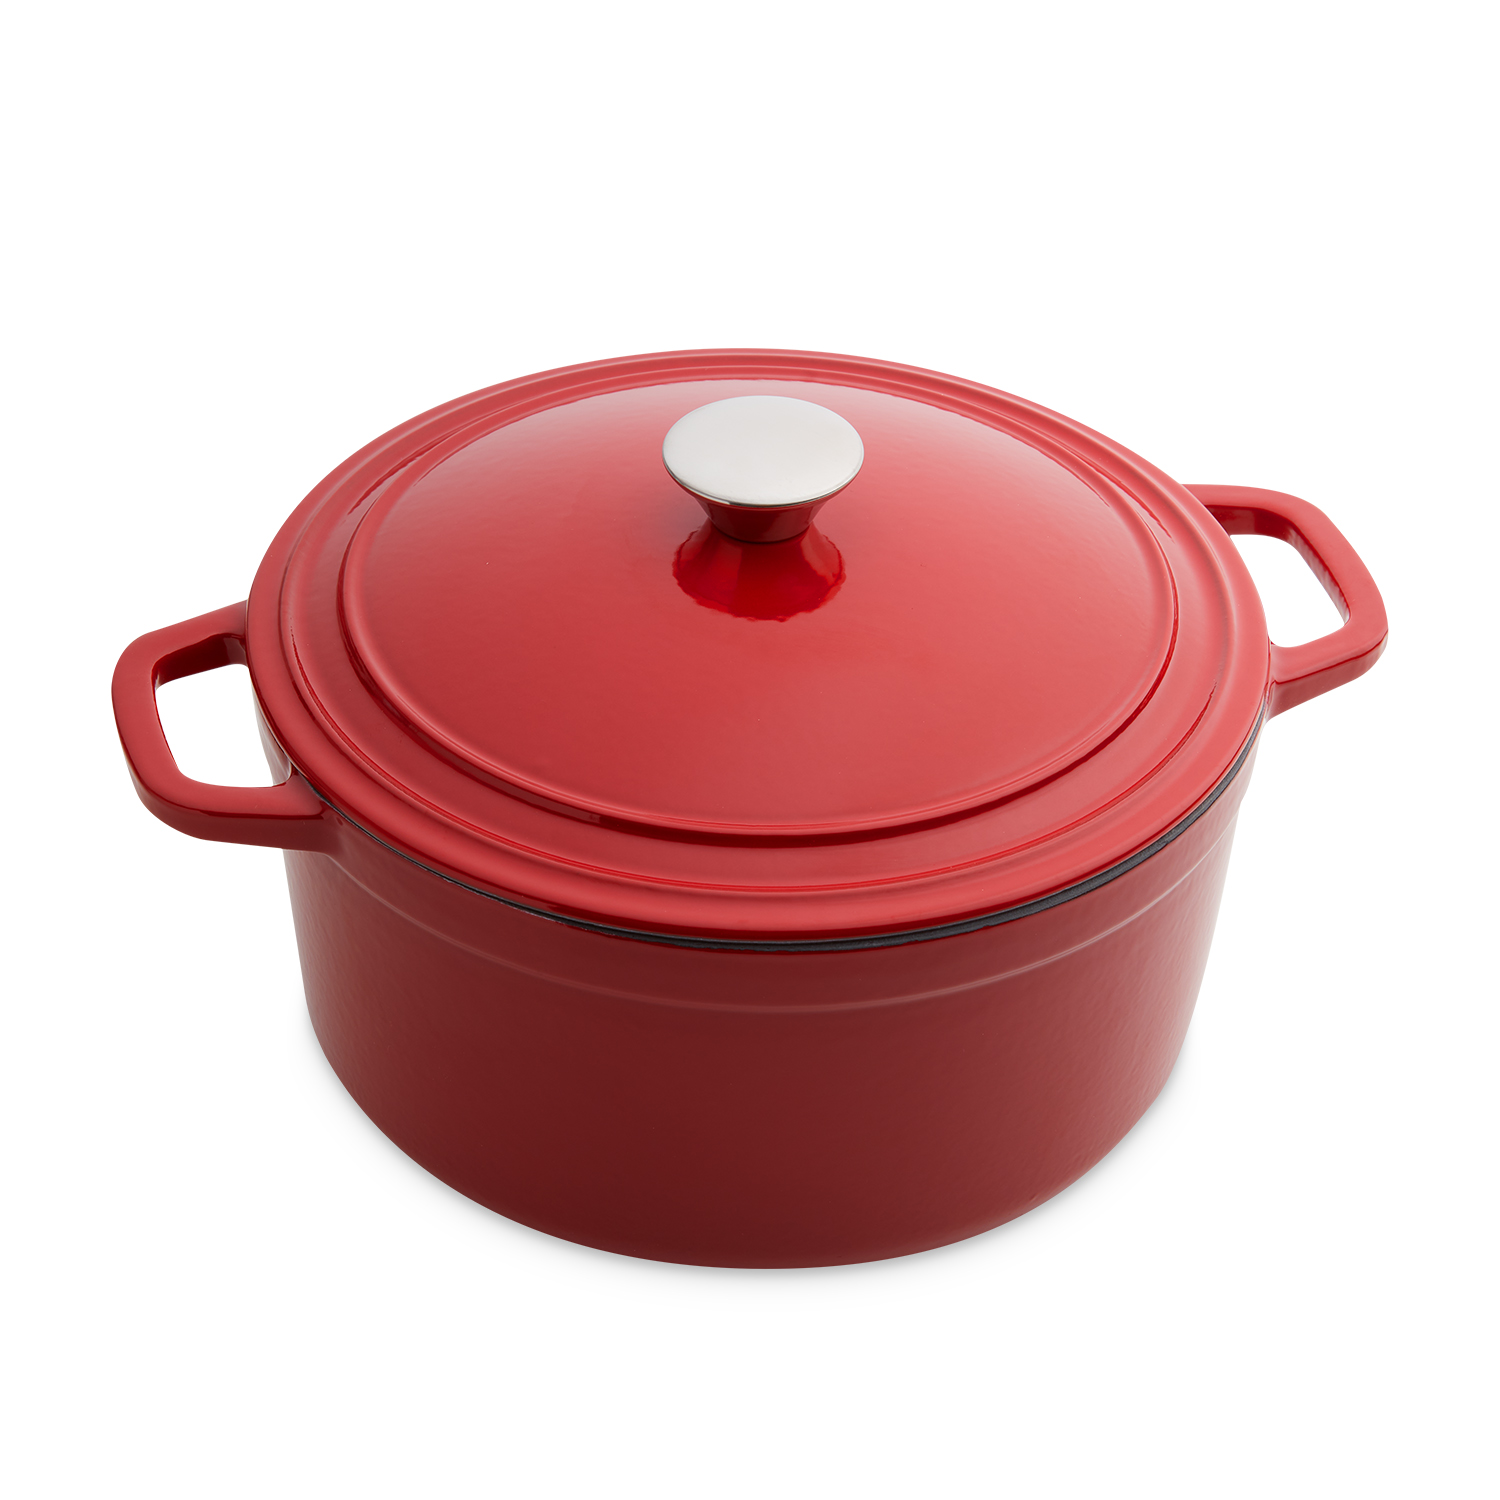 Cast Iron Round Casserole Dish Red 5.2L